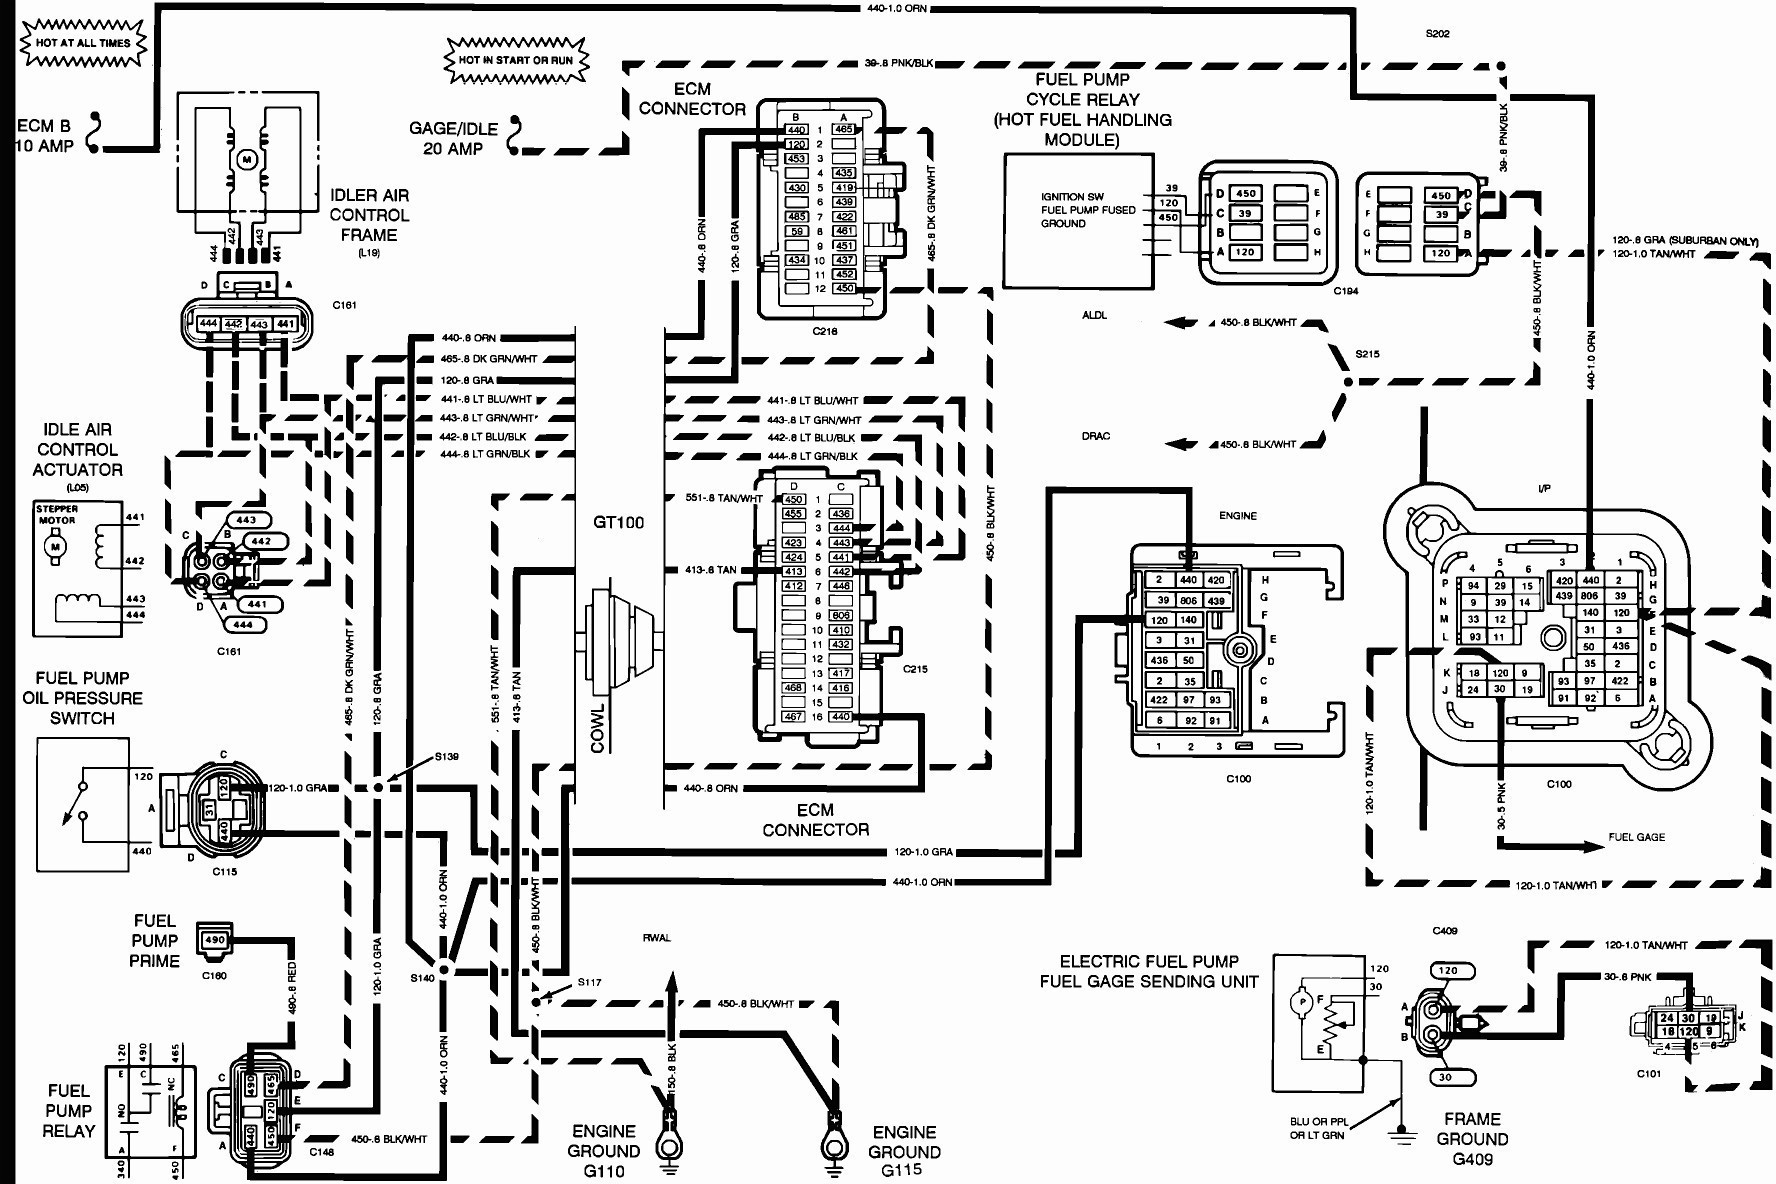 Motorhome Wiring Diagram Manual Valid Best Fleetwood Fuse 2000 Ford F53 Chassis 9